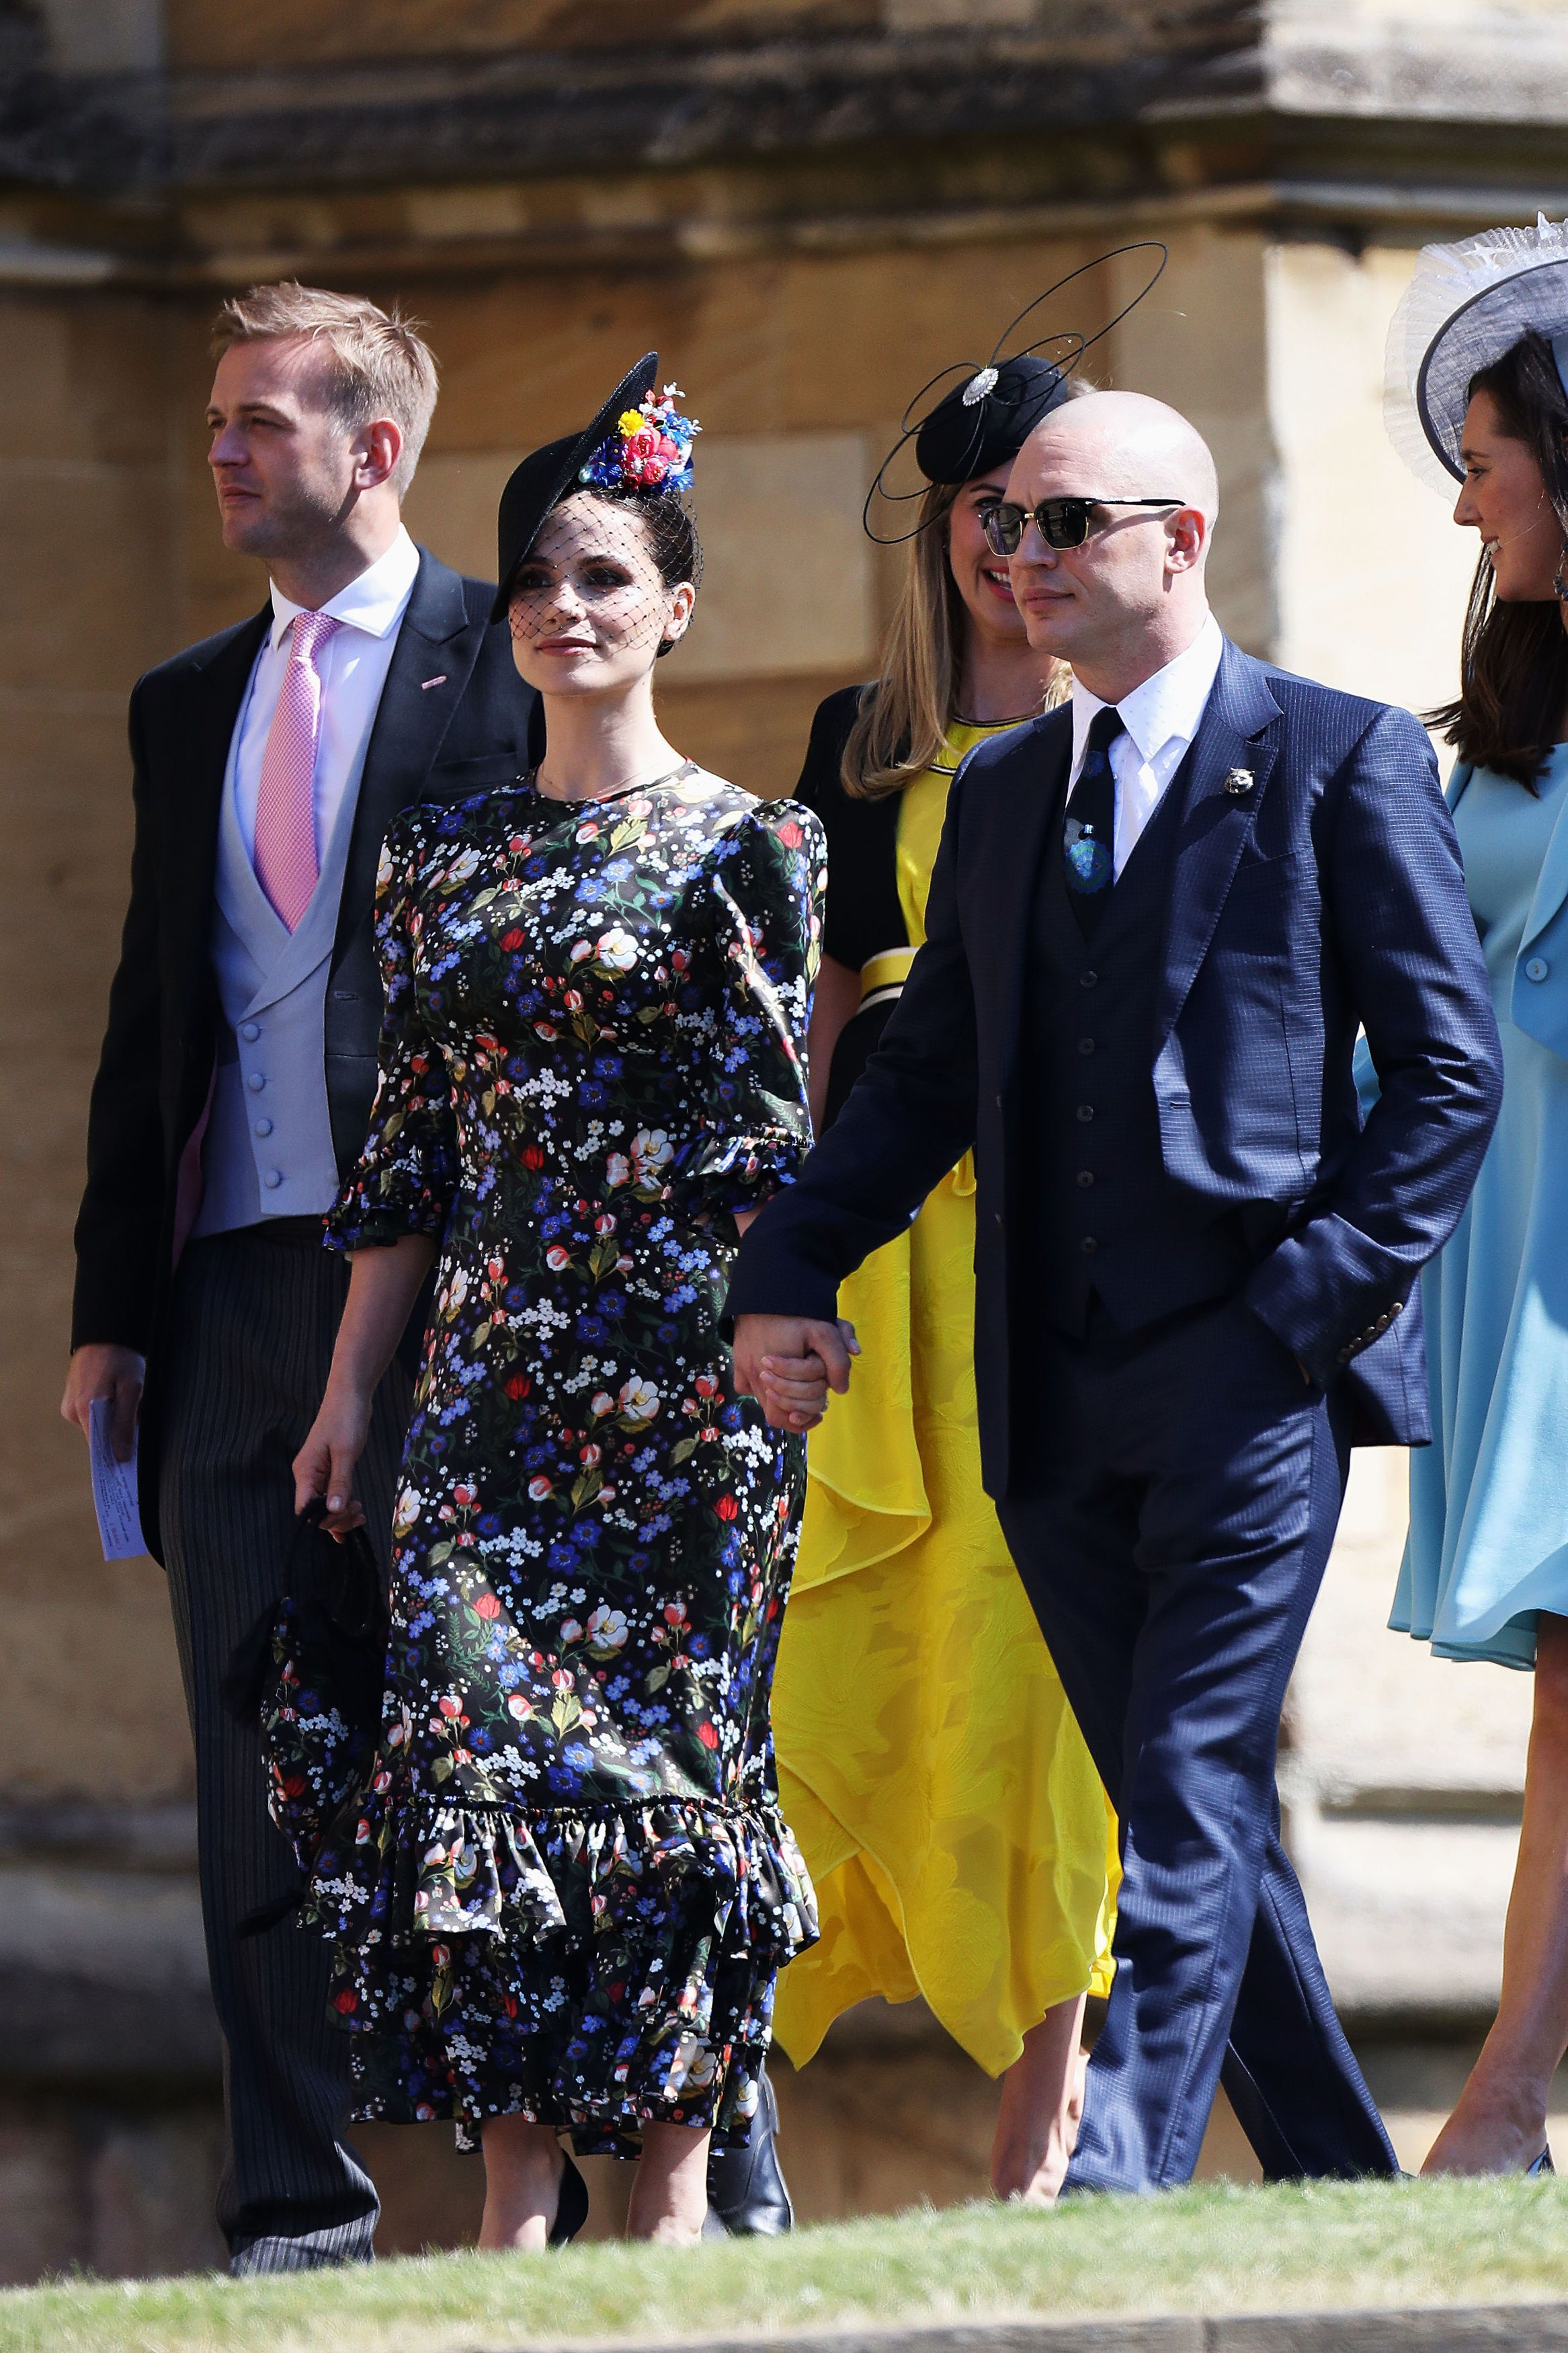 Charlotte Riley and a newly-bald Tom